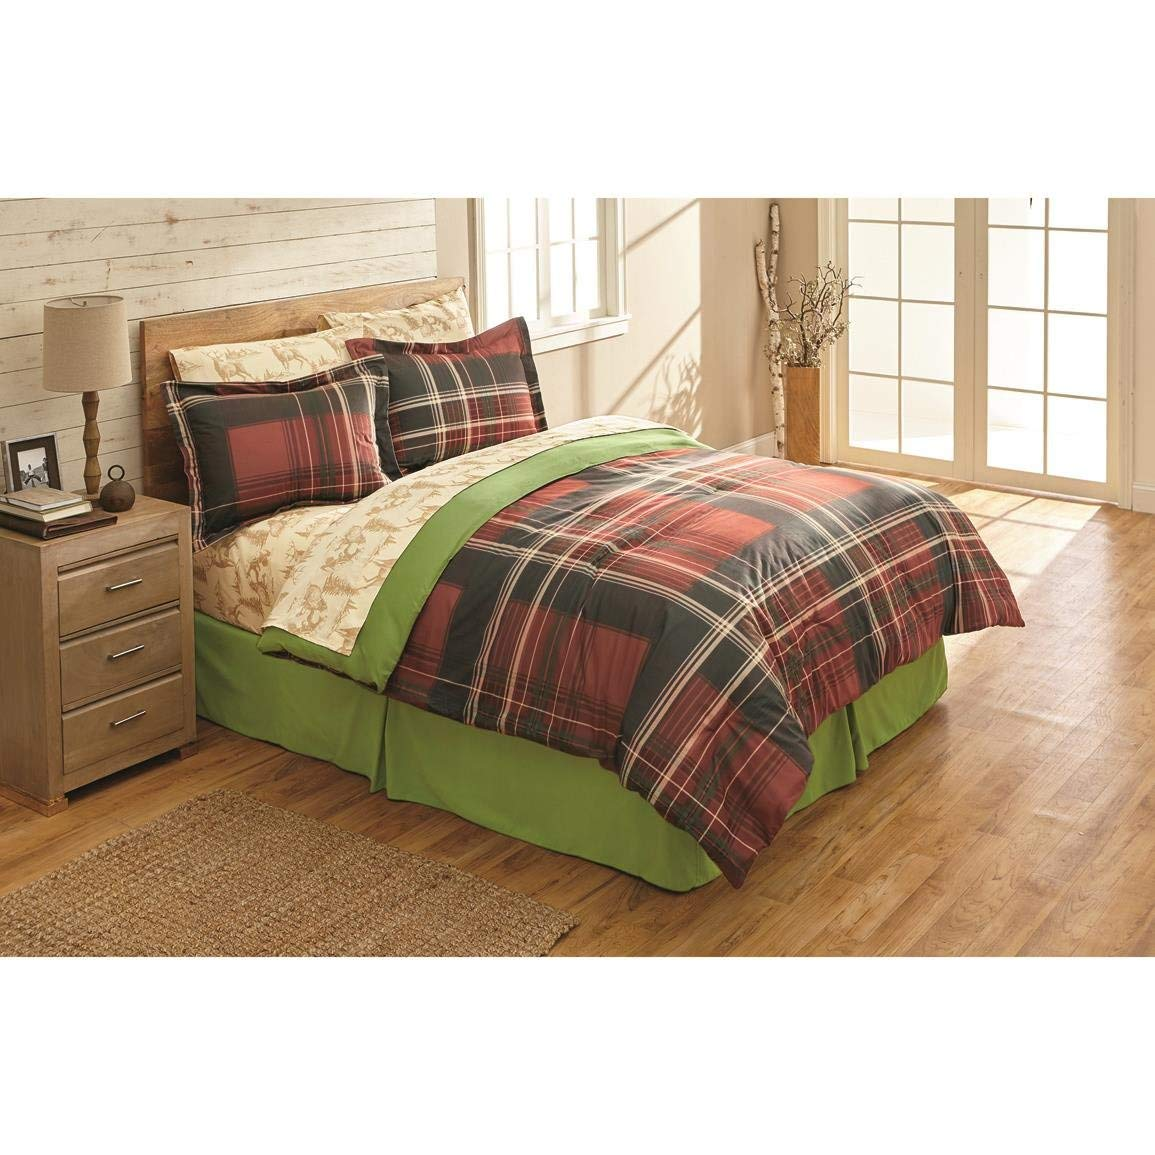 N2 6 Piece Black Red Plaid Comforter Twin Set, Cabin Themed Bedding Checkered Ivory Lines Checked Lodge Pattern Montana Brown Bear Deer Pine Trees Sheets Madras Buffalo Classic, Polyester